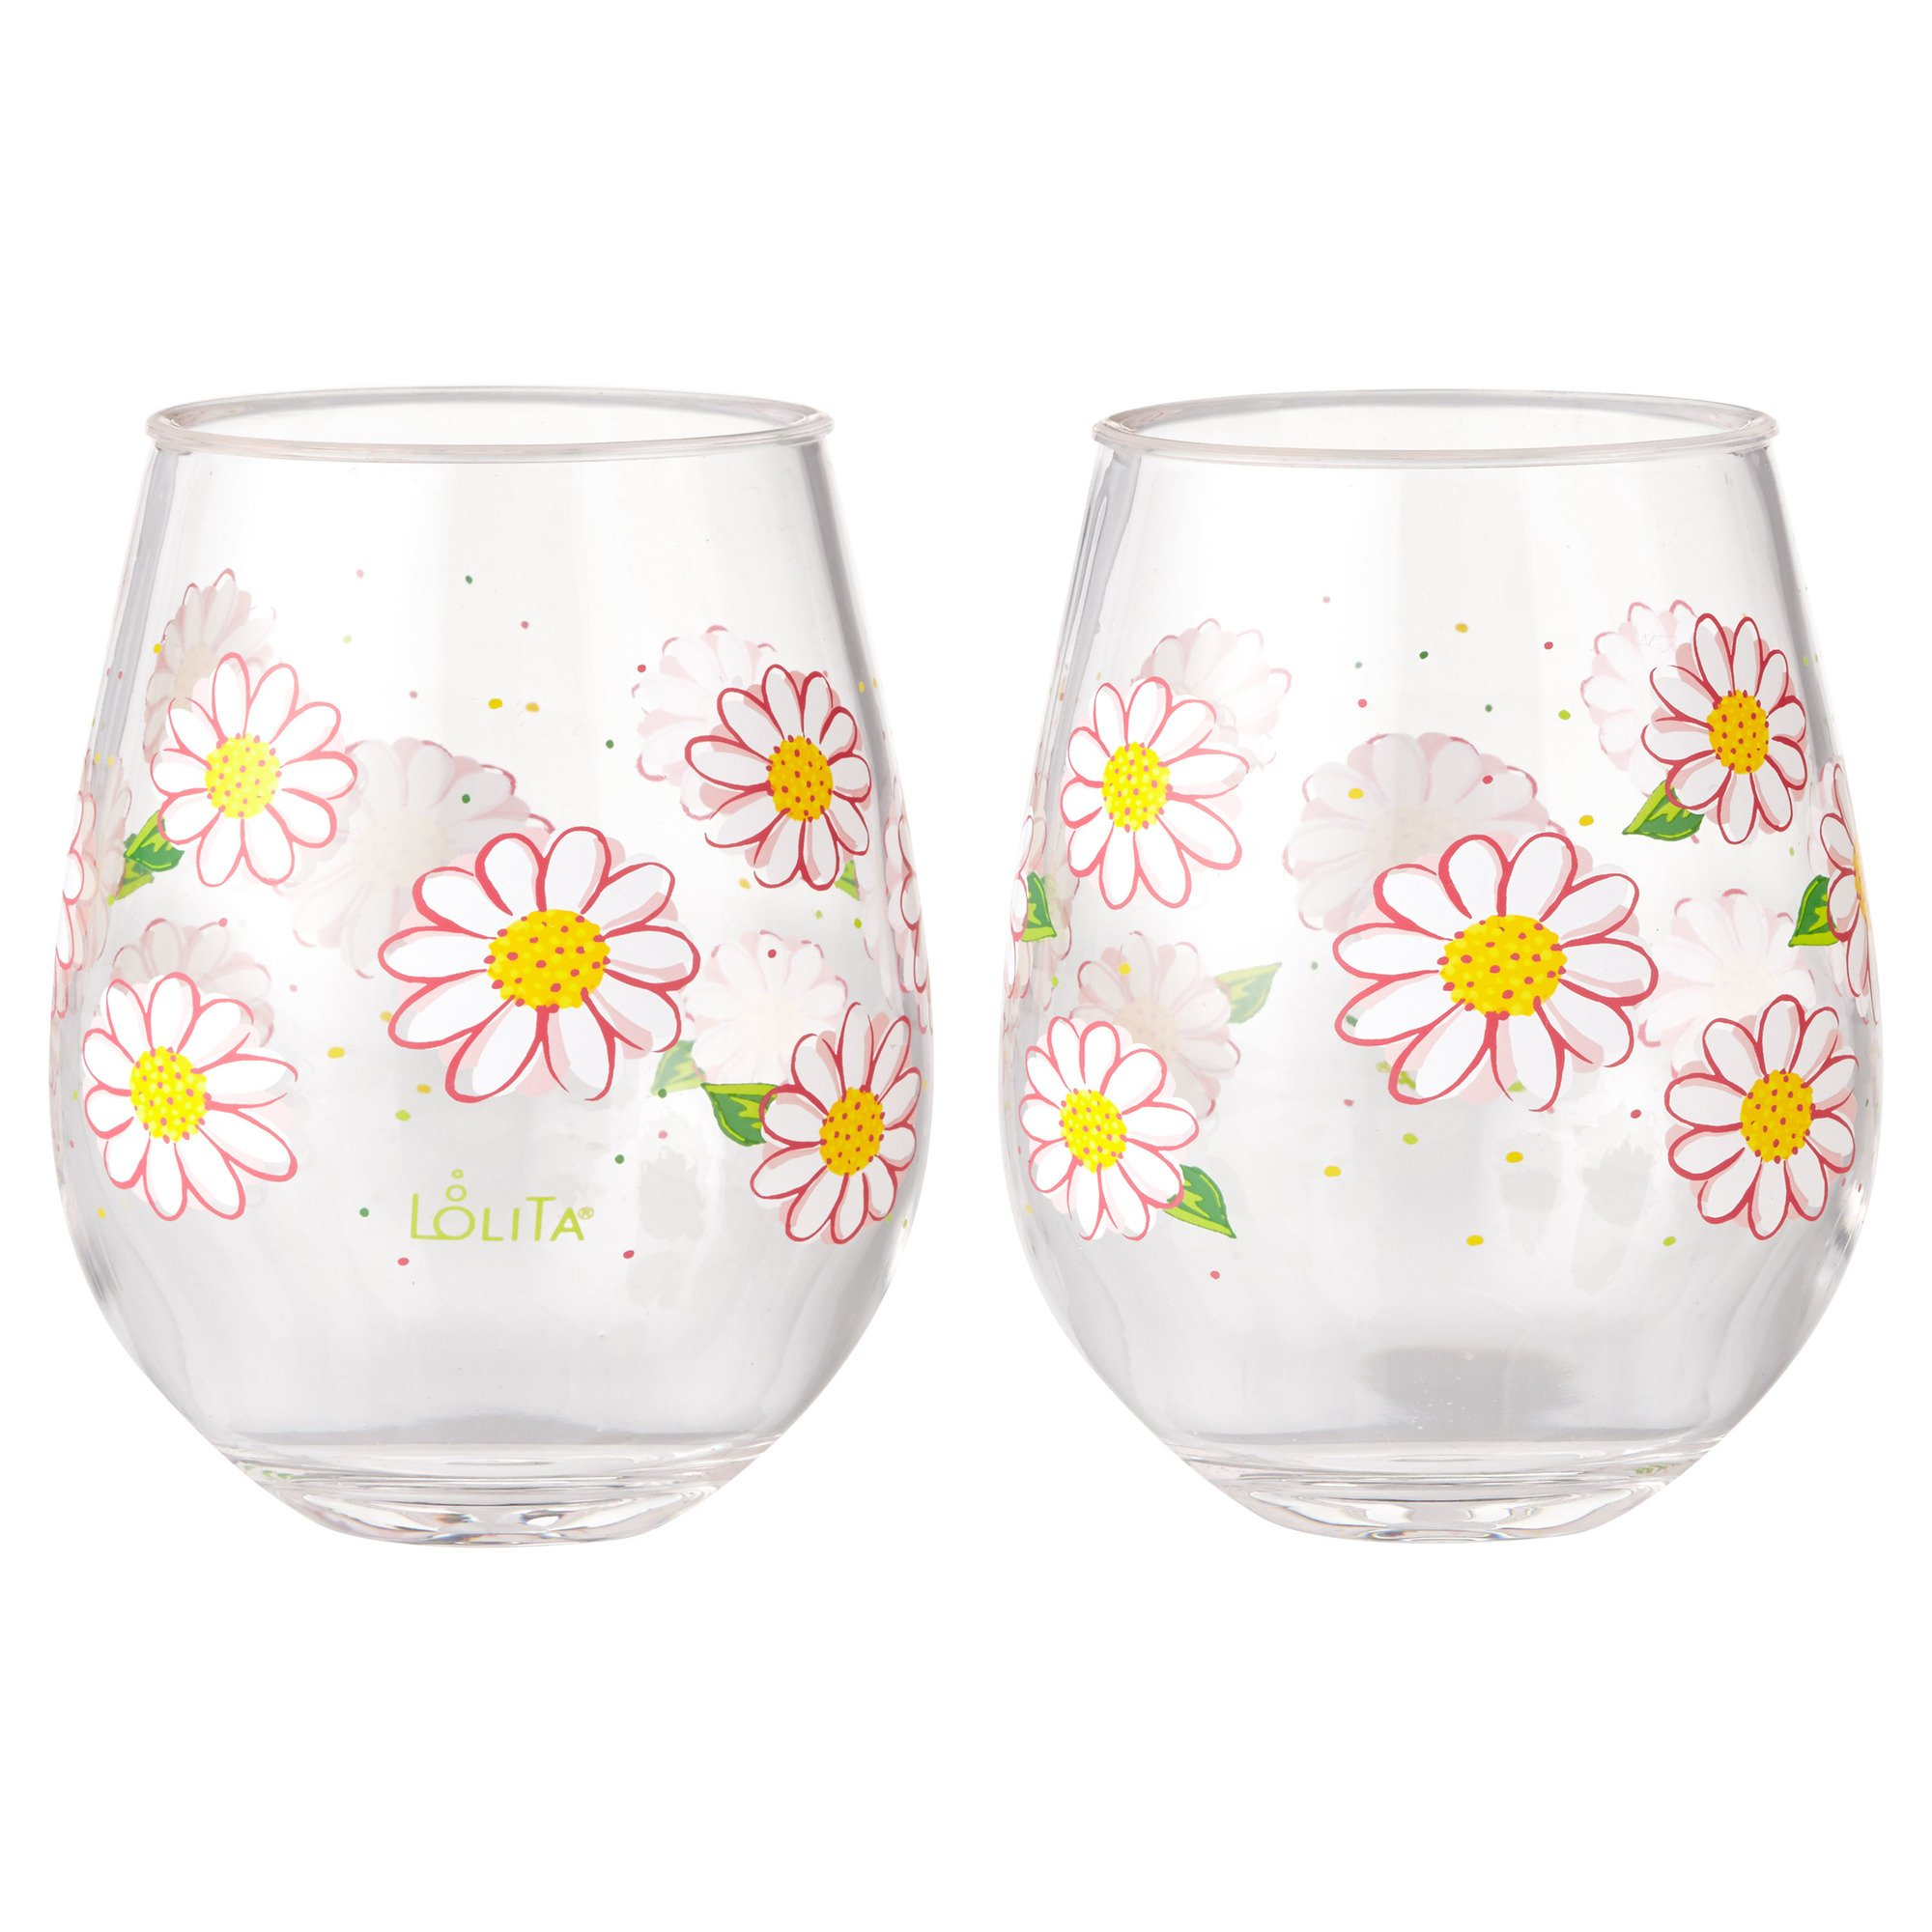 Enesco Designs by Lolita Oops a Daisy Acrylic Stemless Wine Glasses, Set of 2, 17 oz.